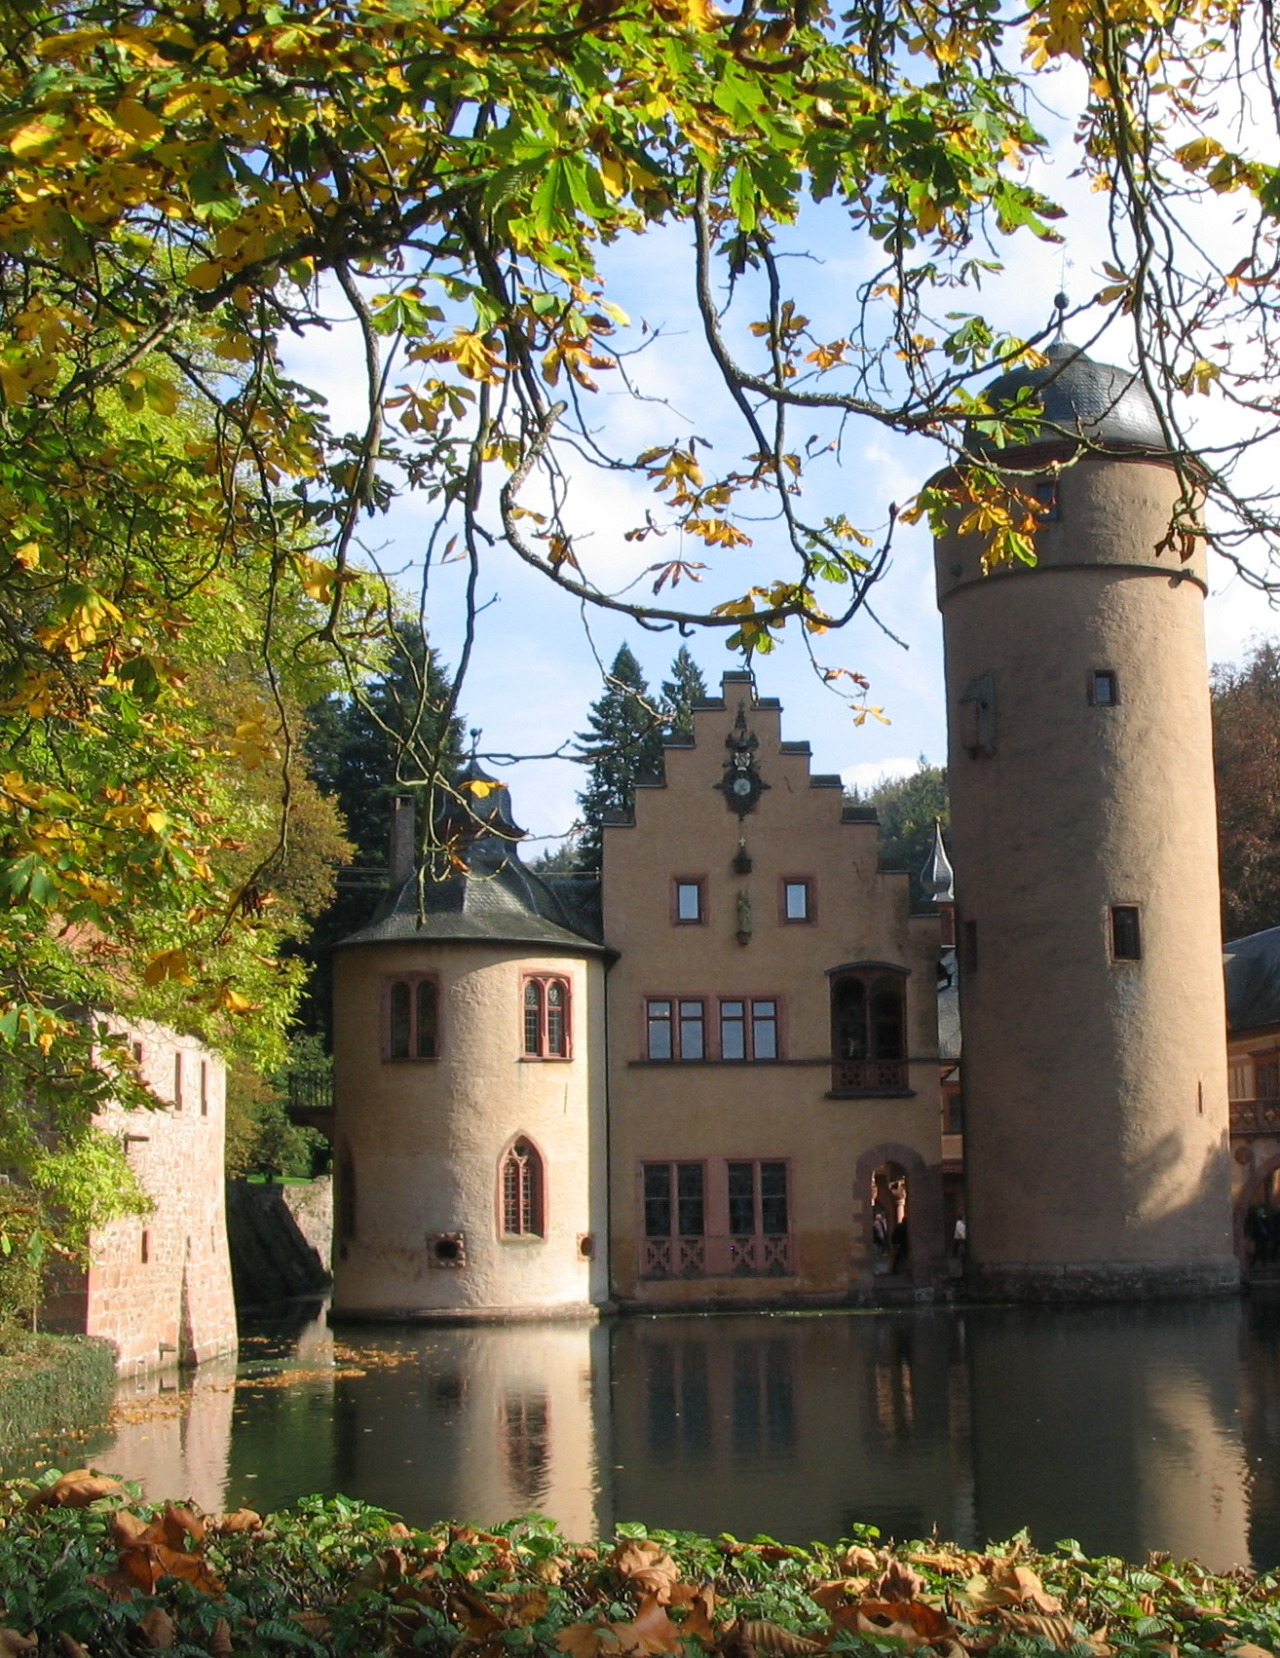 Mespelbrunn Castle, one of the most visited water castles in Germany